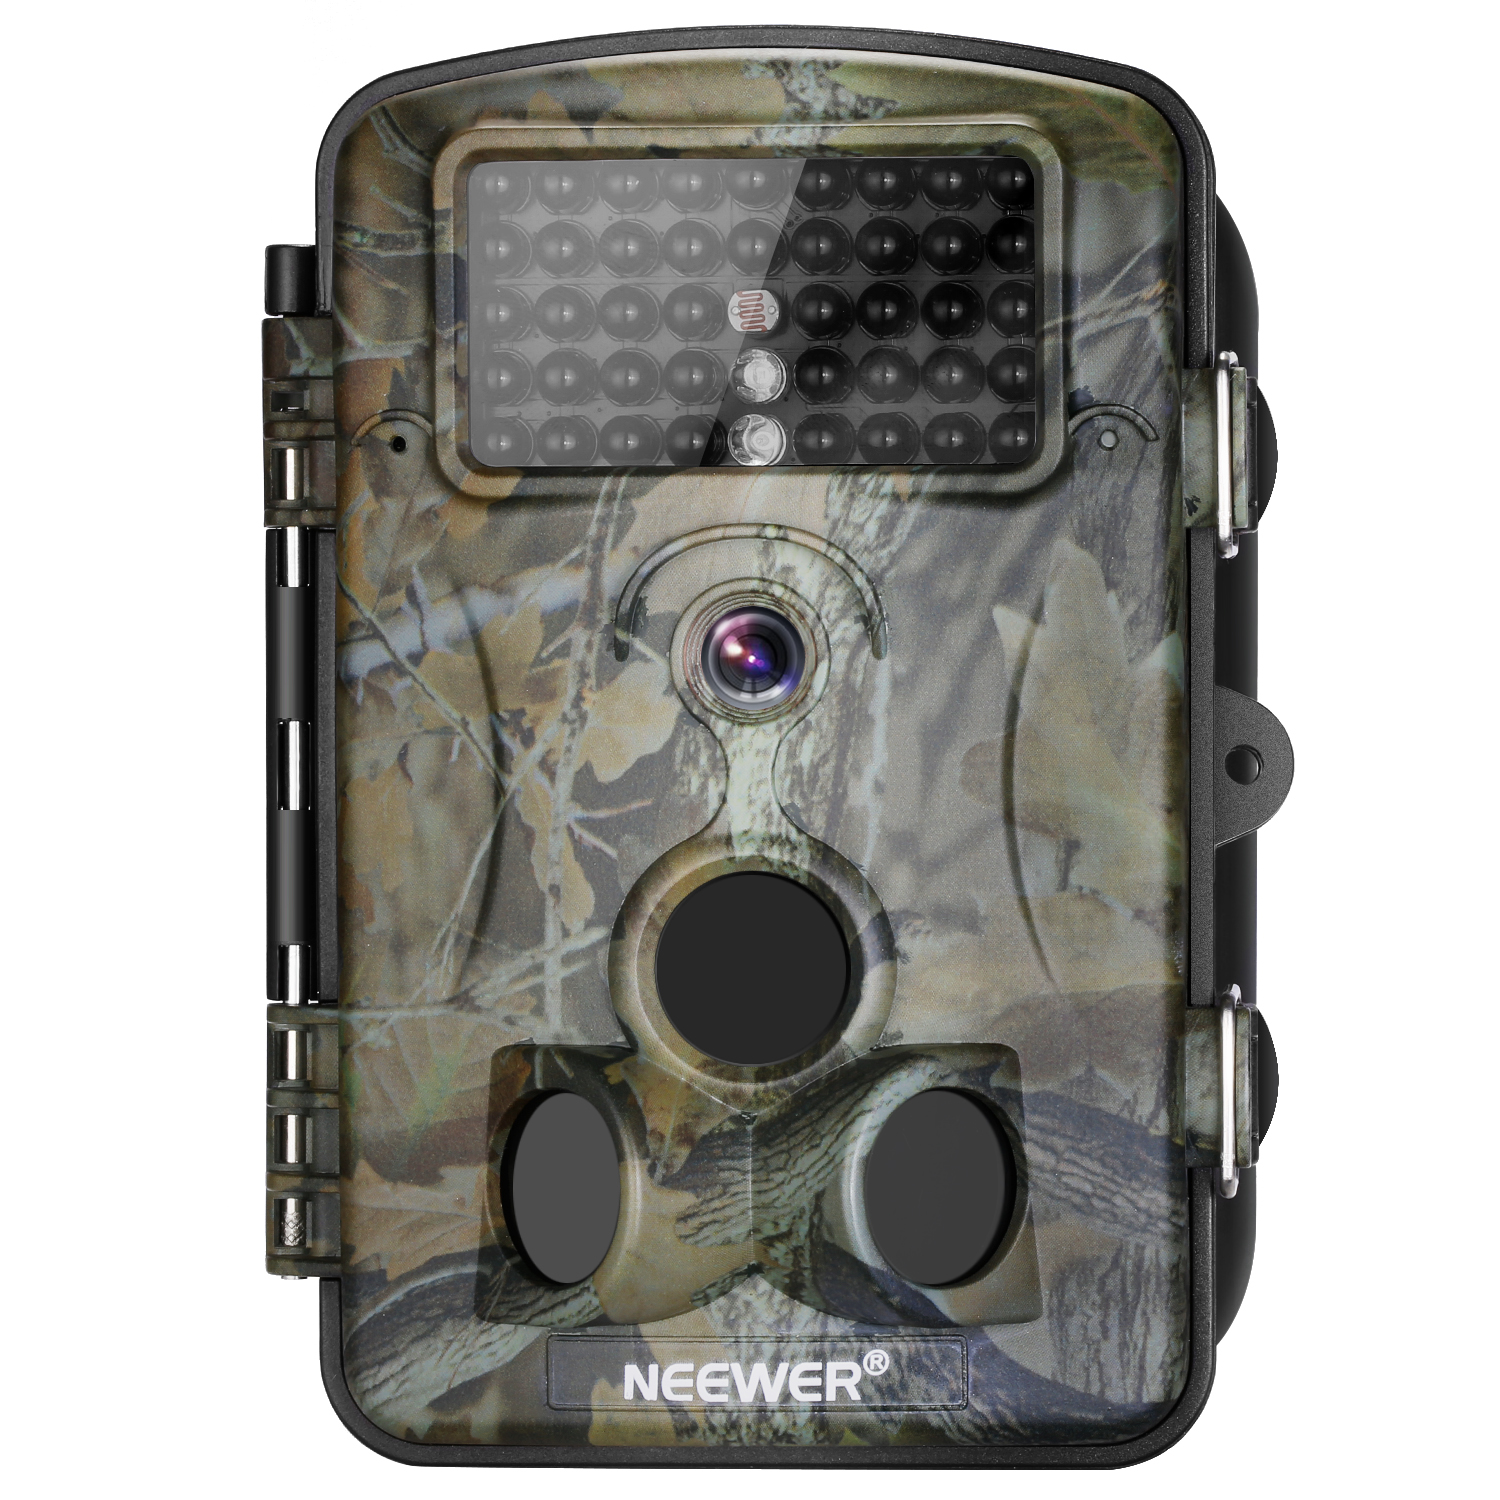 Neewer Hunting Trail Camera Infrared Night Vision, 1080P 12MP HD Infrared 2.4 inches LCD Screen Image